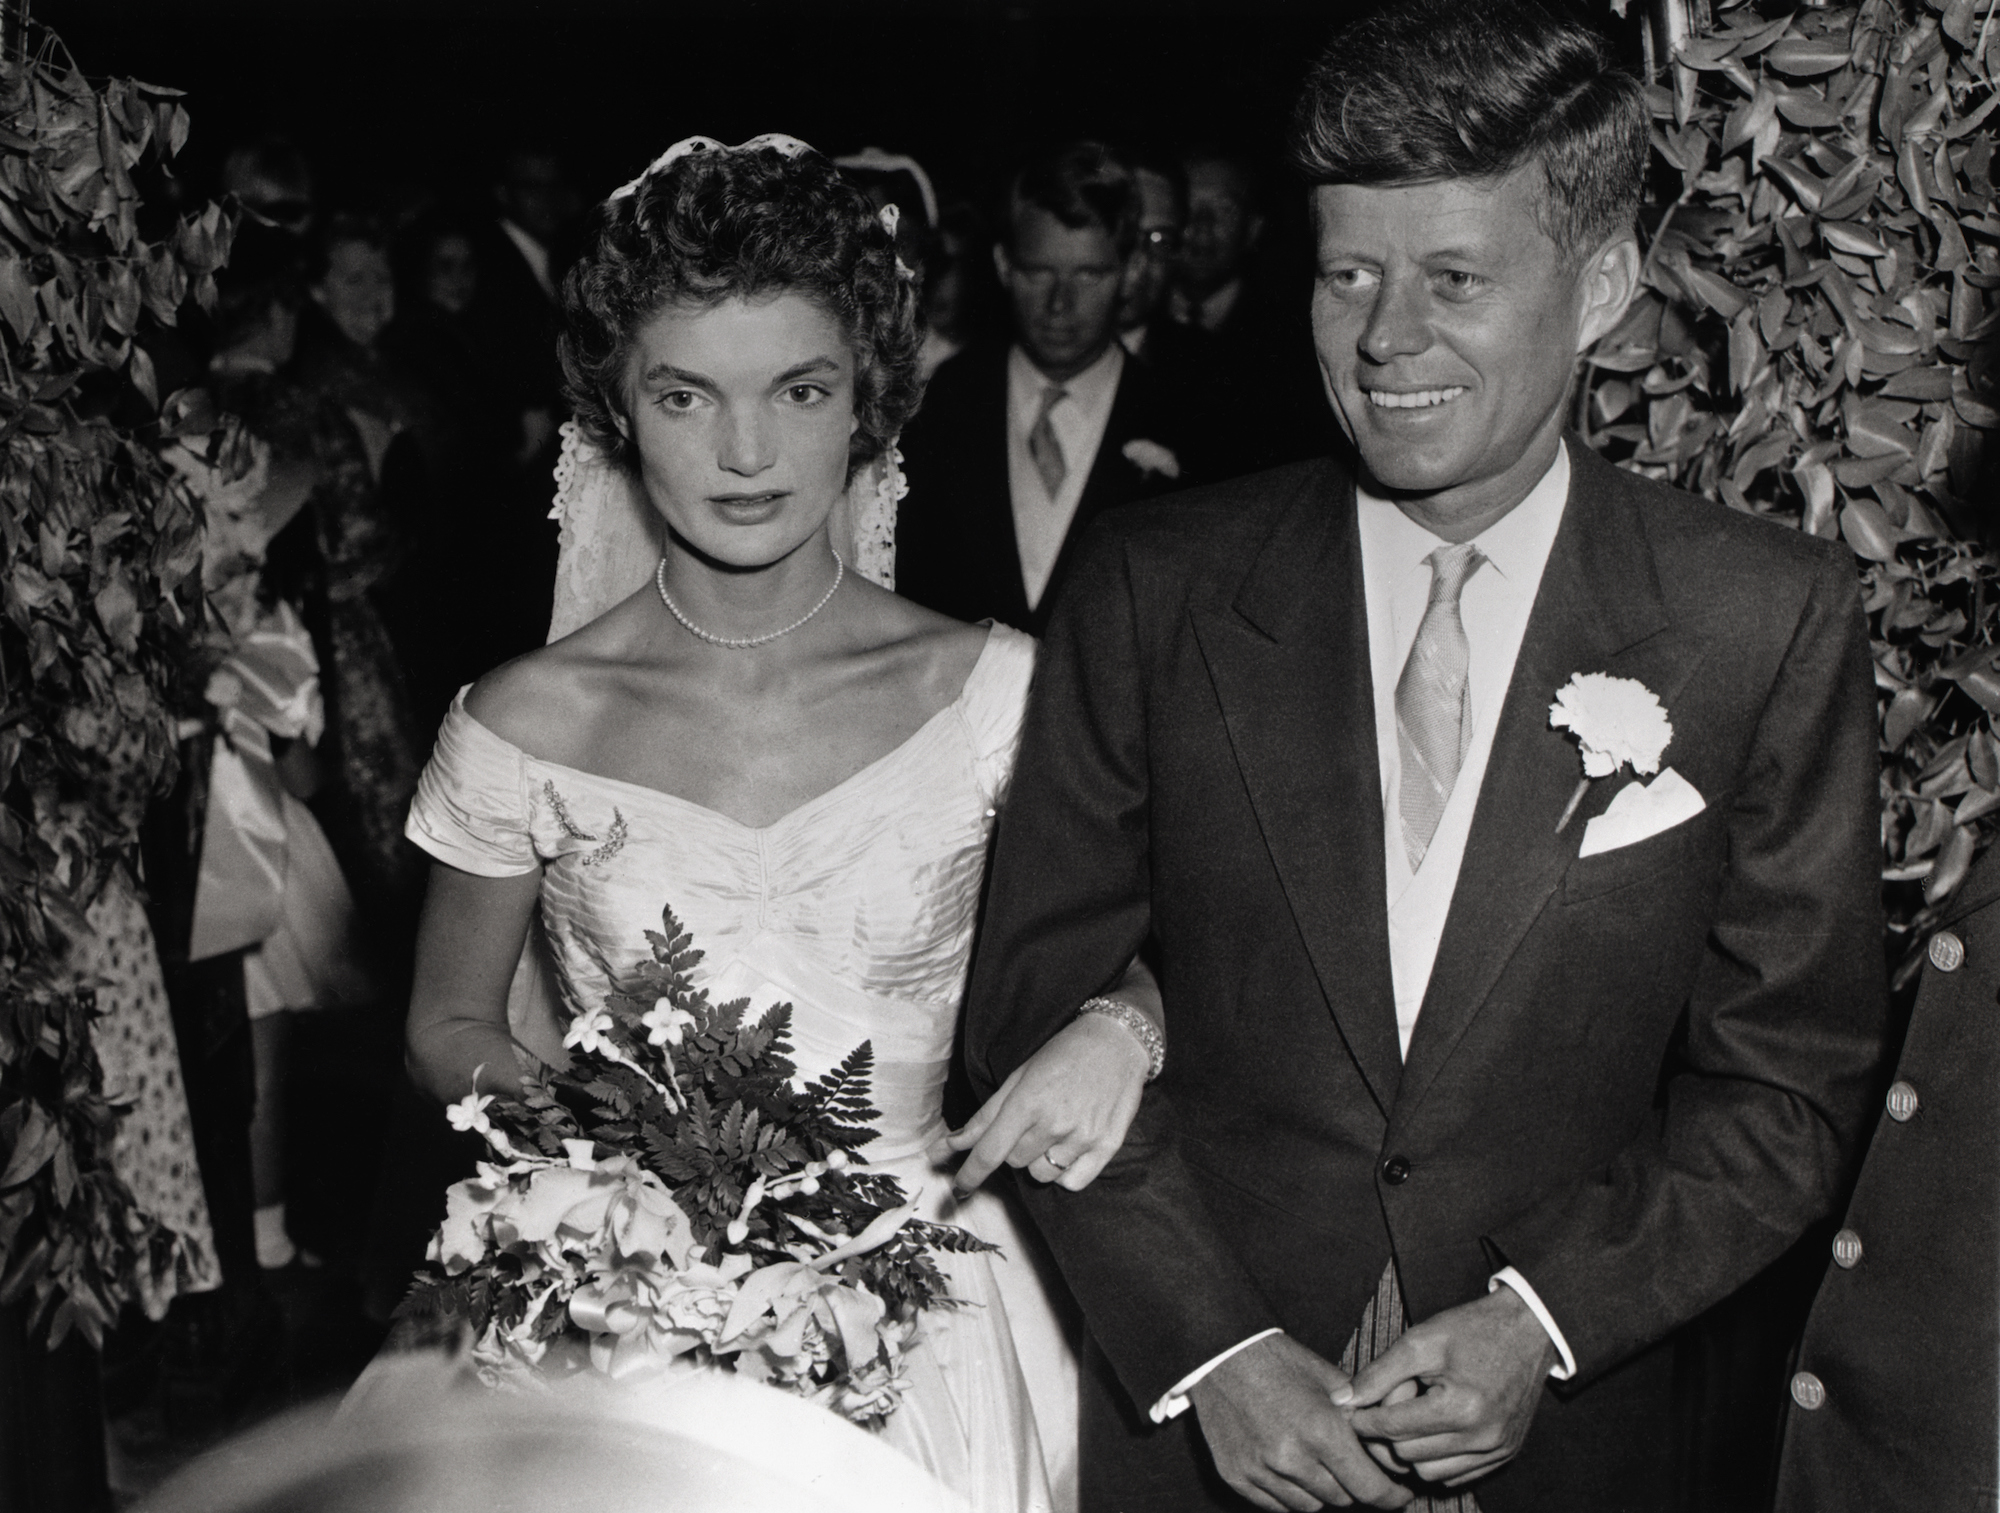 Jackie Kennedy dress lead